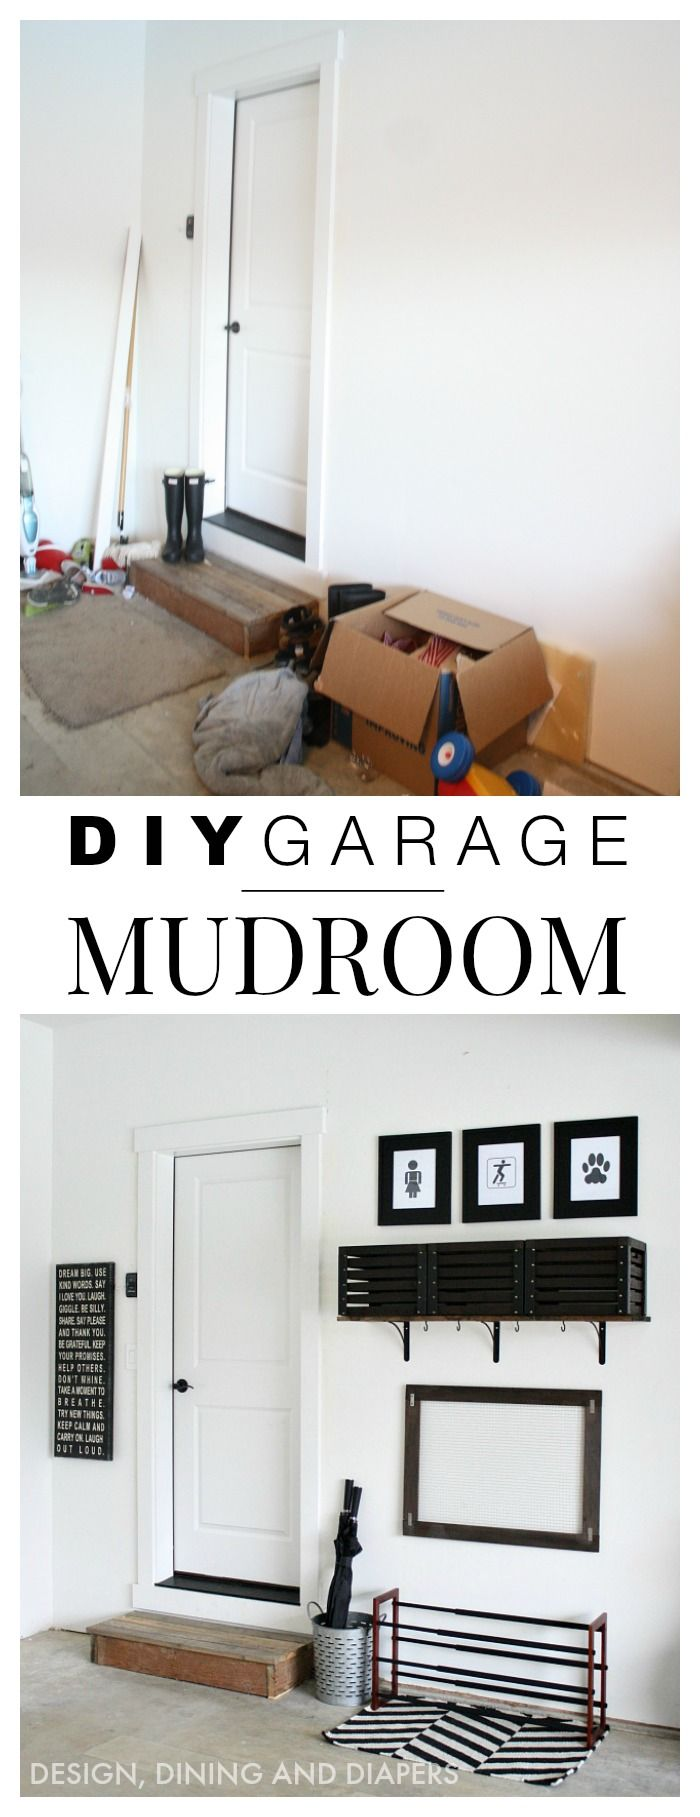 Entryway Storage Solutions Mudroom Diy Garage And